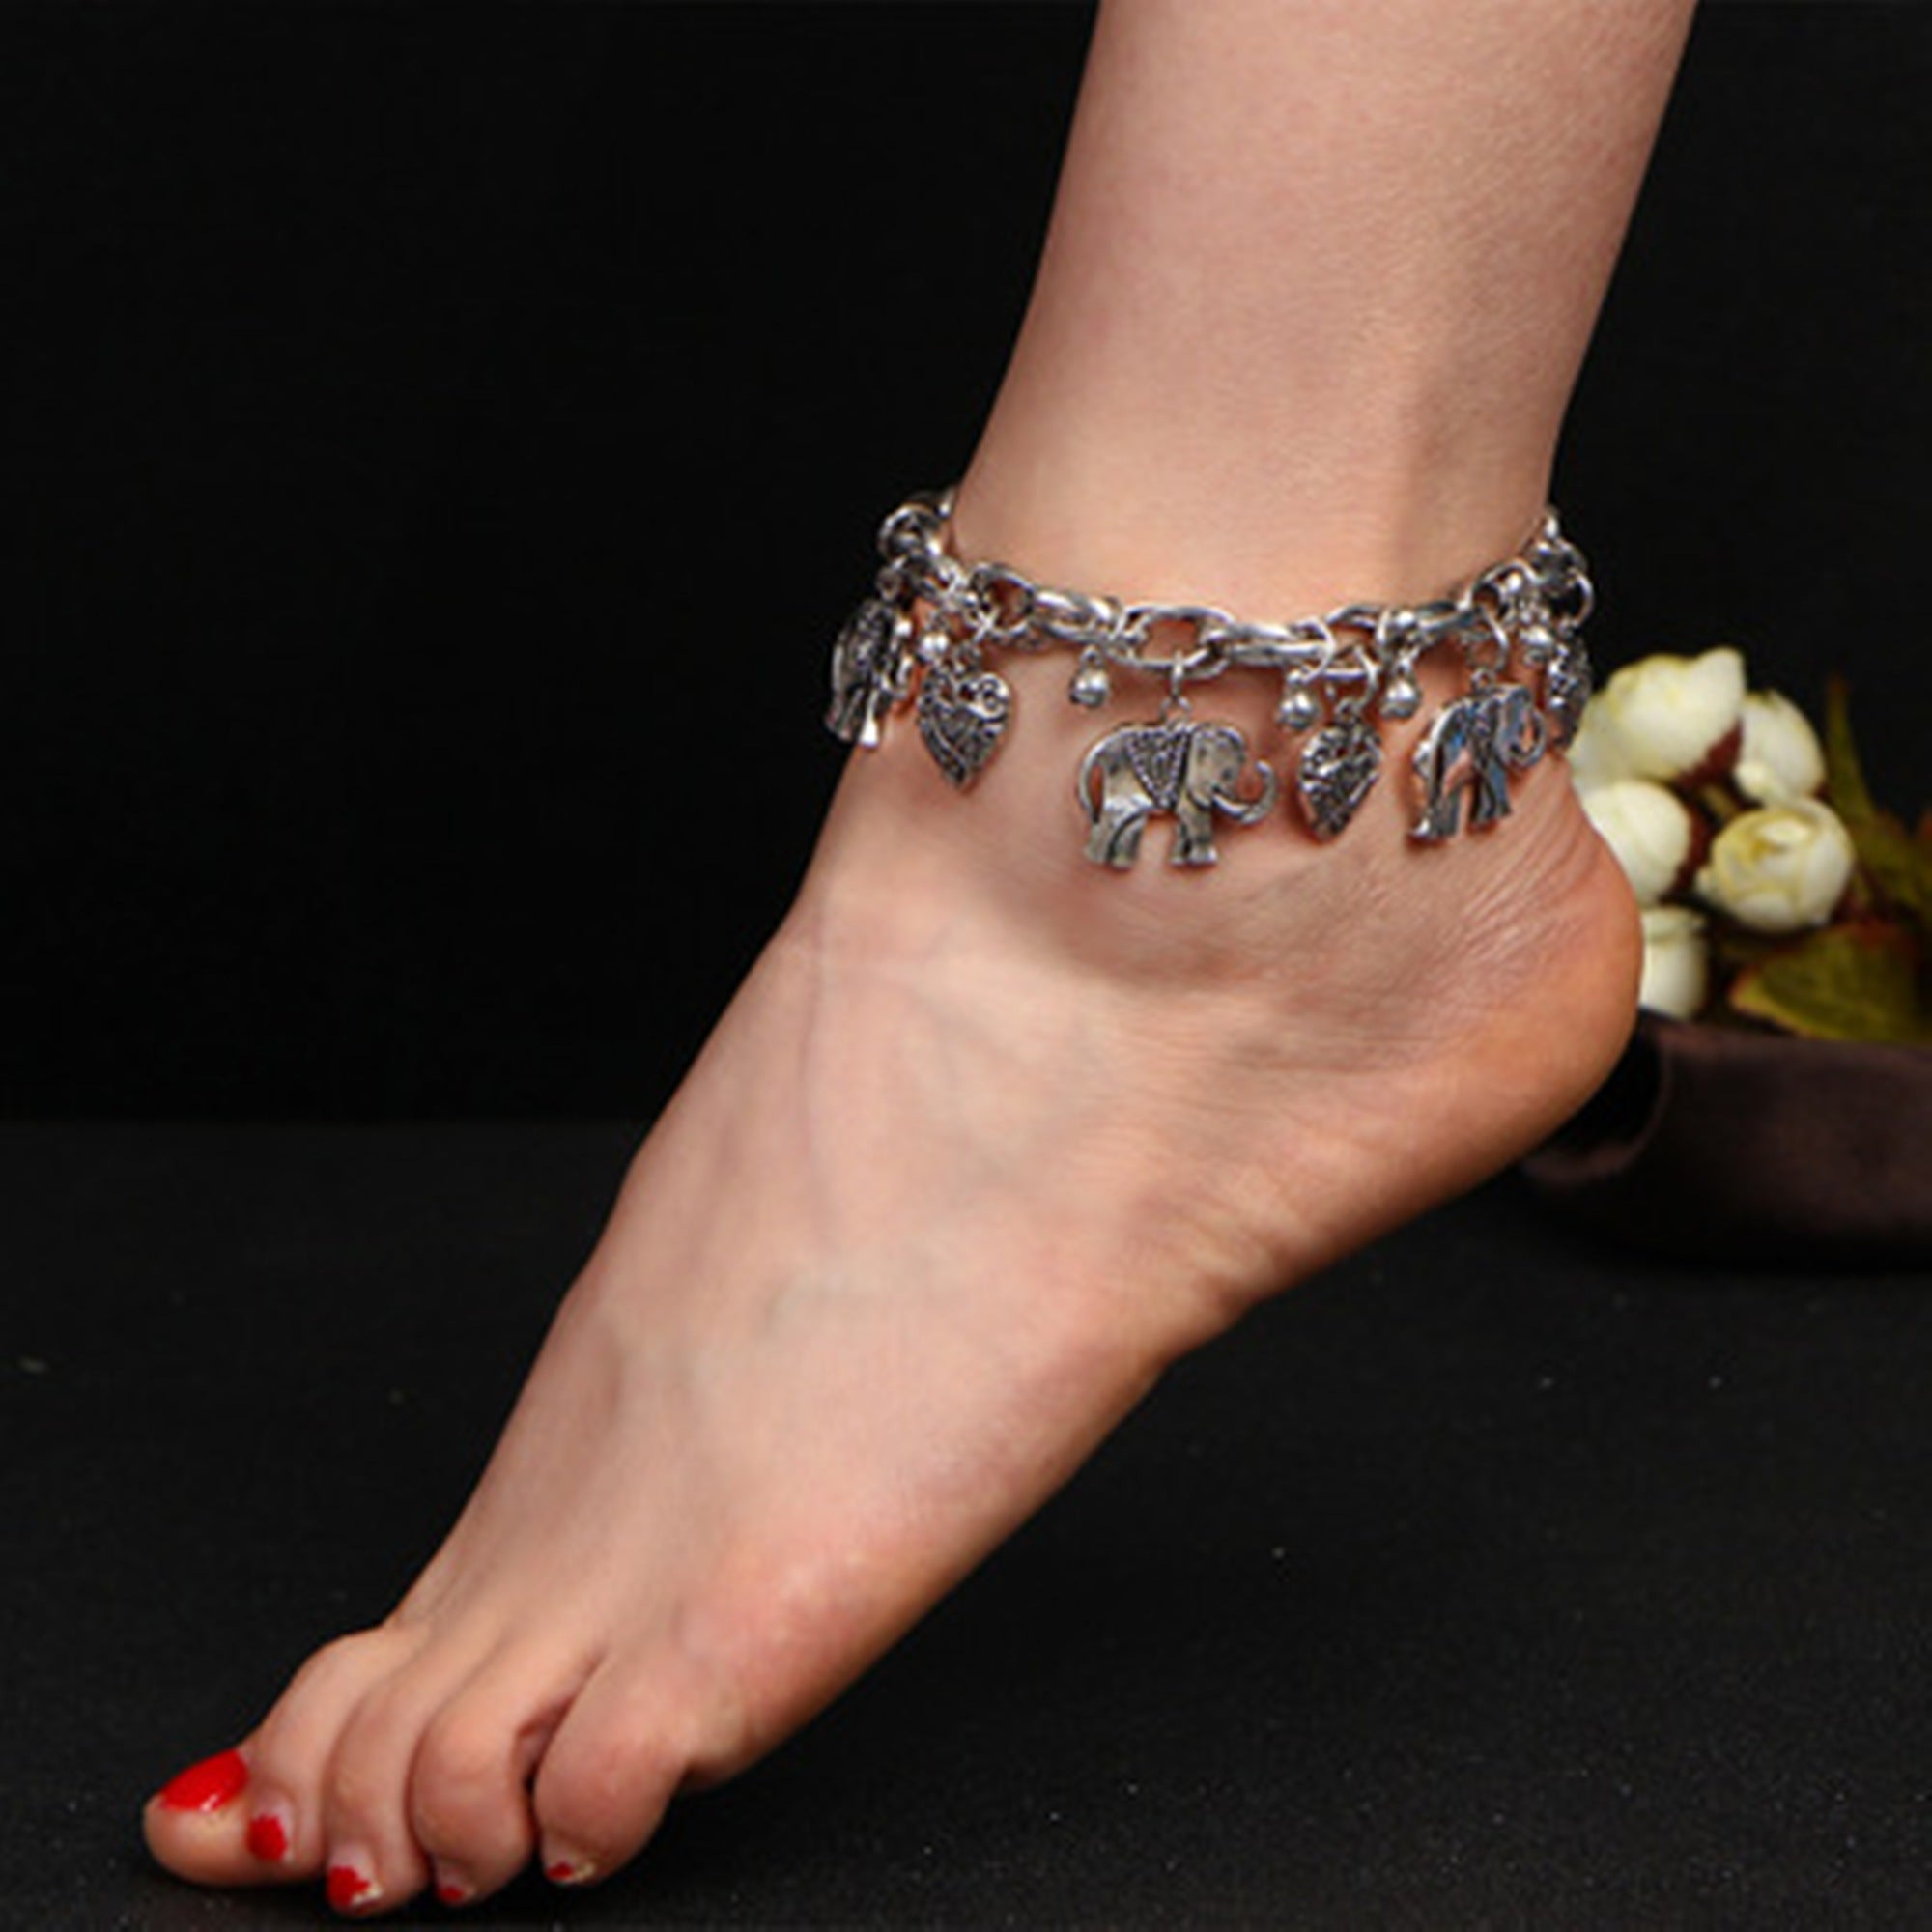 diamond sterling bracelet co on accent palm gold ankle jewellery dp ring amazon set silver anklet toe beach uk jewelry